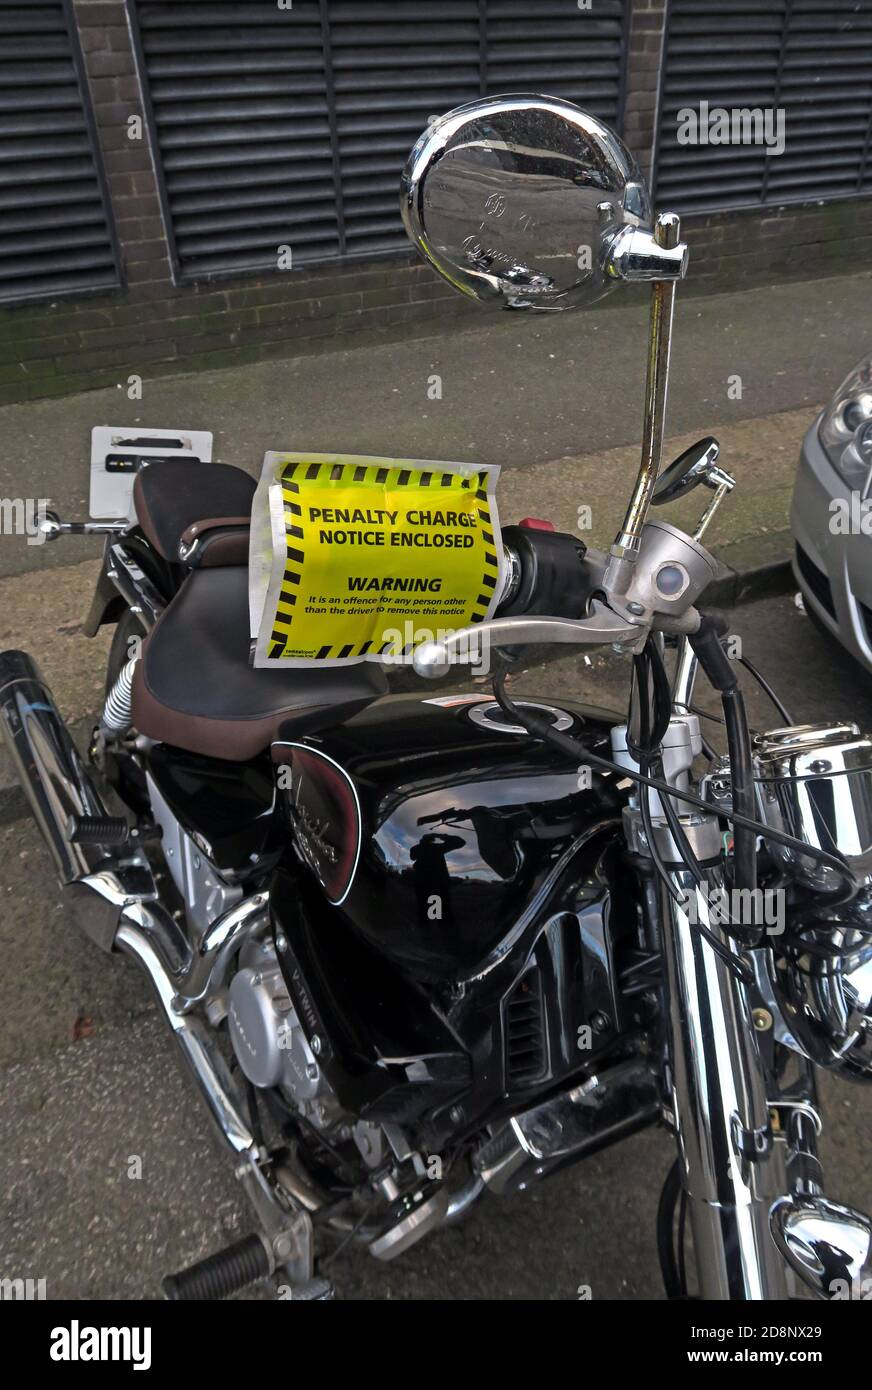 HotpixUK,@HotpixUK,GoTonySmith,UK,England,Great Britain,GB,Liverpool,Merseyside,Penalty Charge Notice,english,British,parking ticket,motorbike,yellow,enforcement,fee,fines,fees,classic,Harley Davidson,notice,penalty,parking notice,parking,violation,No parking,any time,booked,caught,bad parking,parking violation,motorcycle parking,motorcycle parking ticket,civil enforcement,On-street parking,city centre parking,problem,parking bay,L3